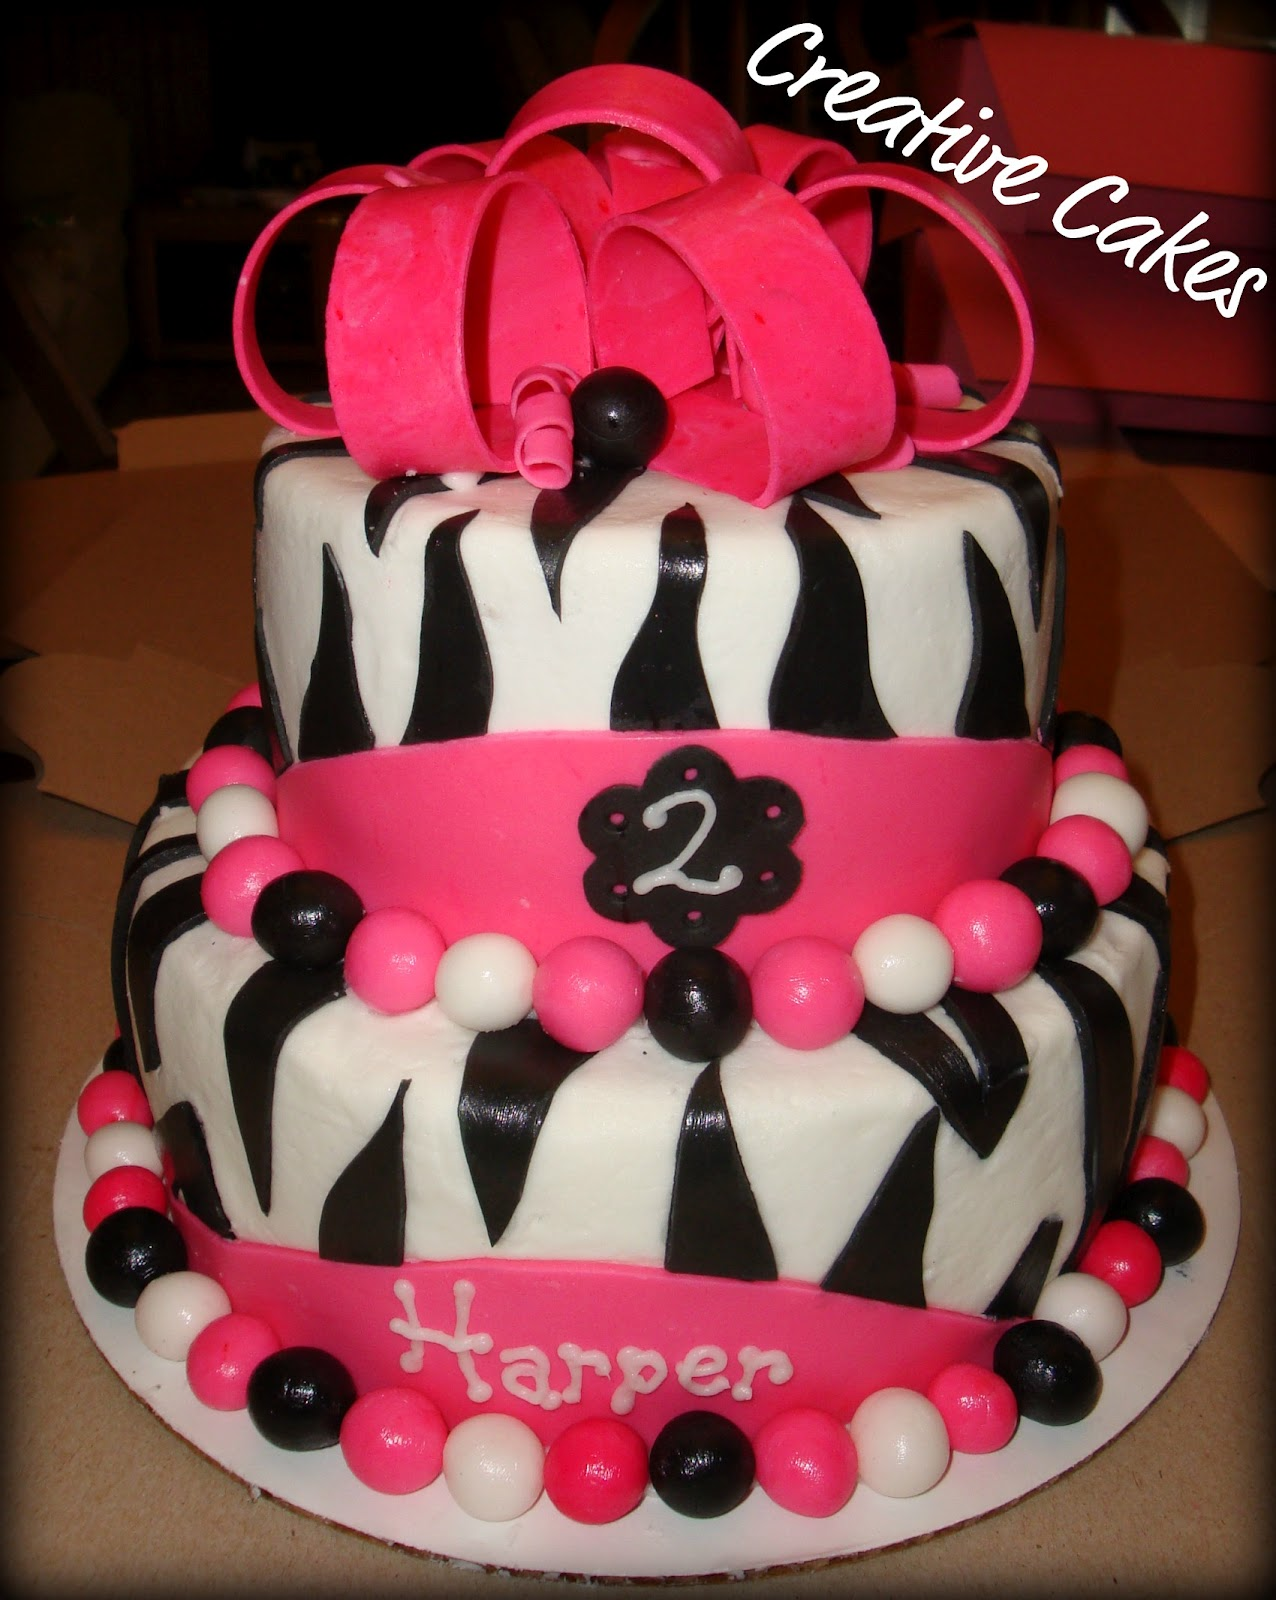 Creative cakes: Small version of the Zebra Cake